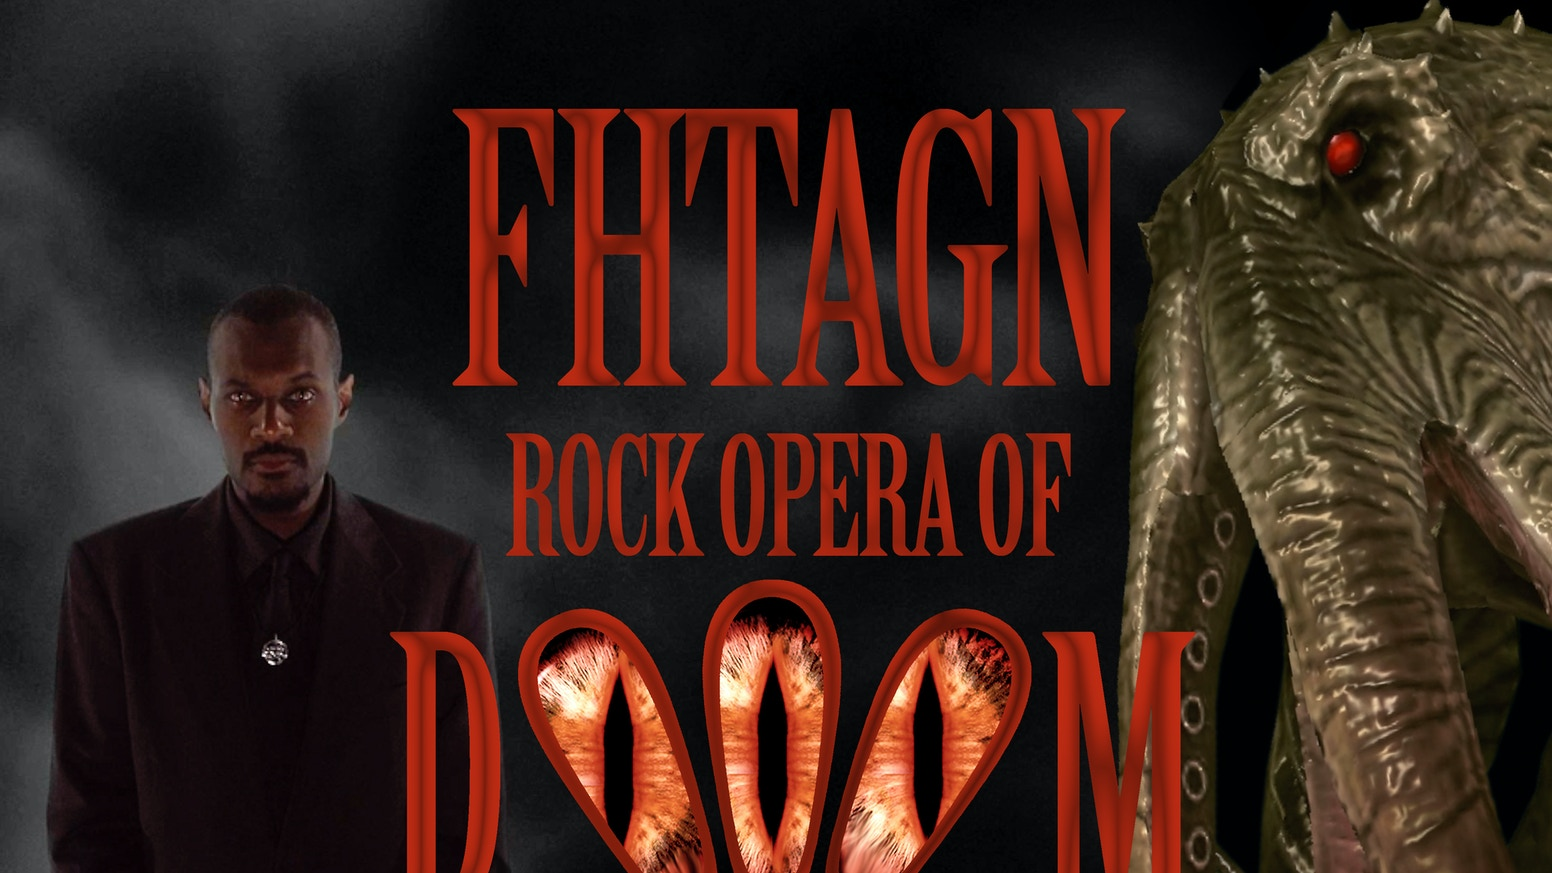 If you are obsessed with H.P. Lovecraft, the Cthulhu Mythos, and dark, heavy music, then this rock opera of insanity is for you!